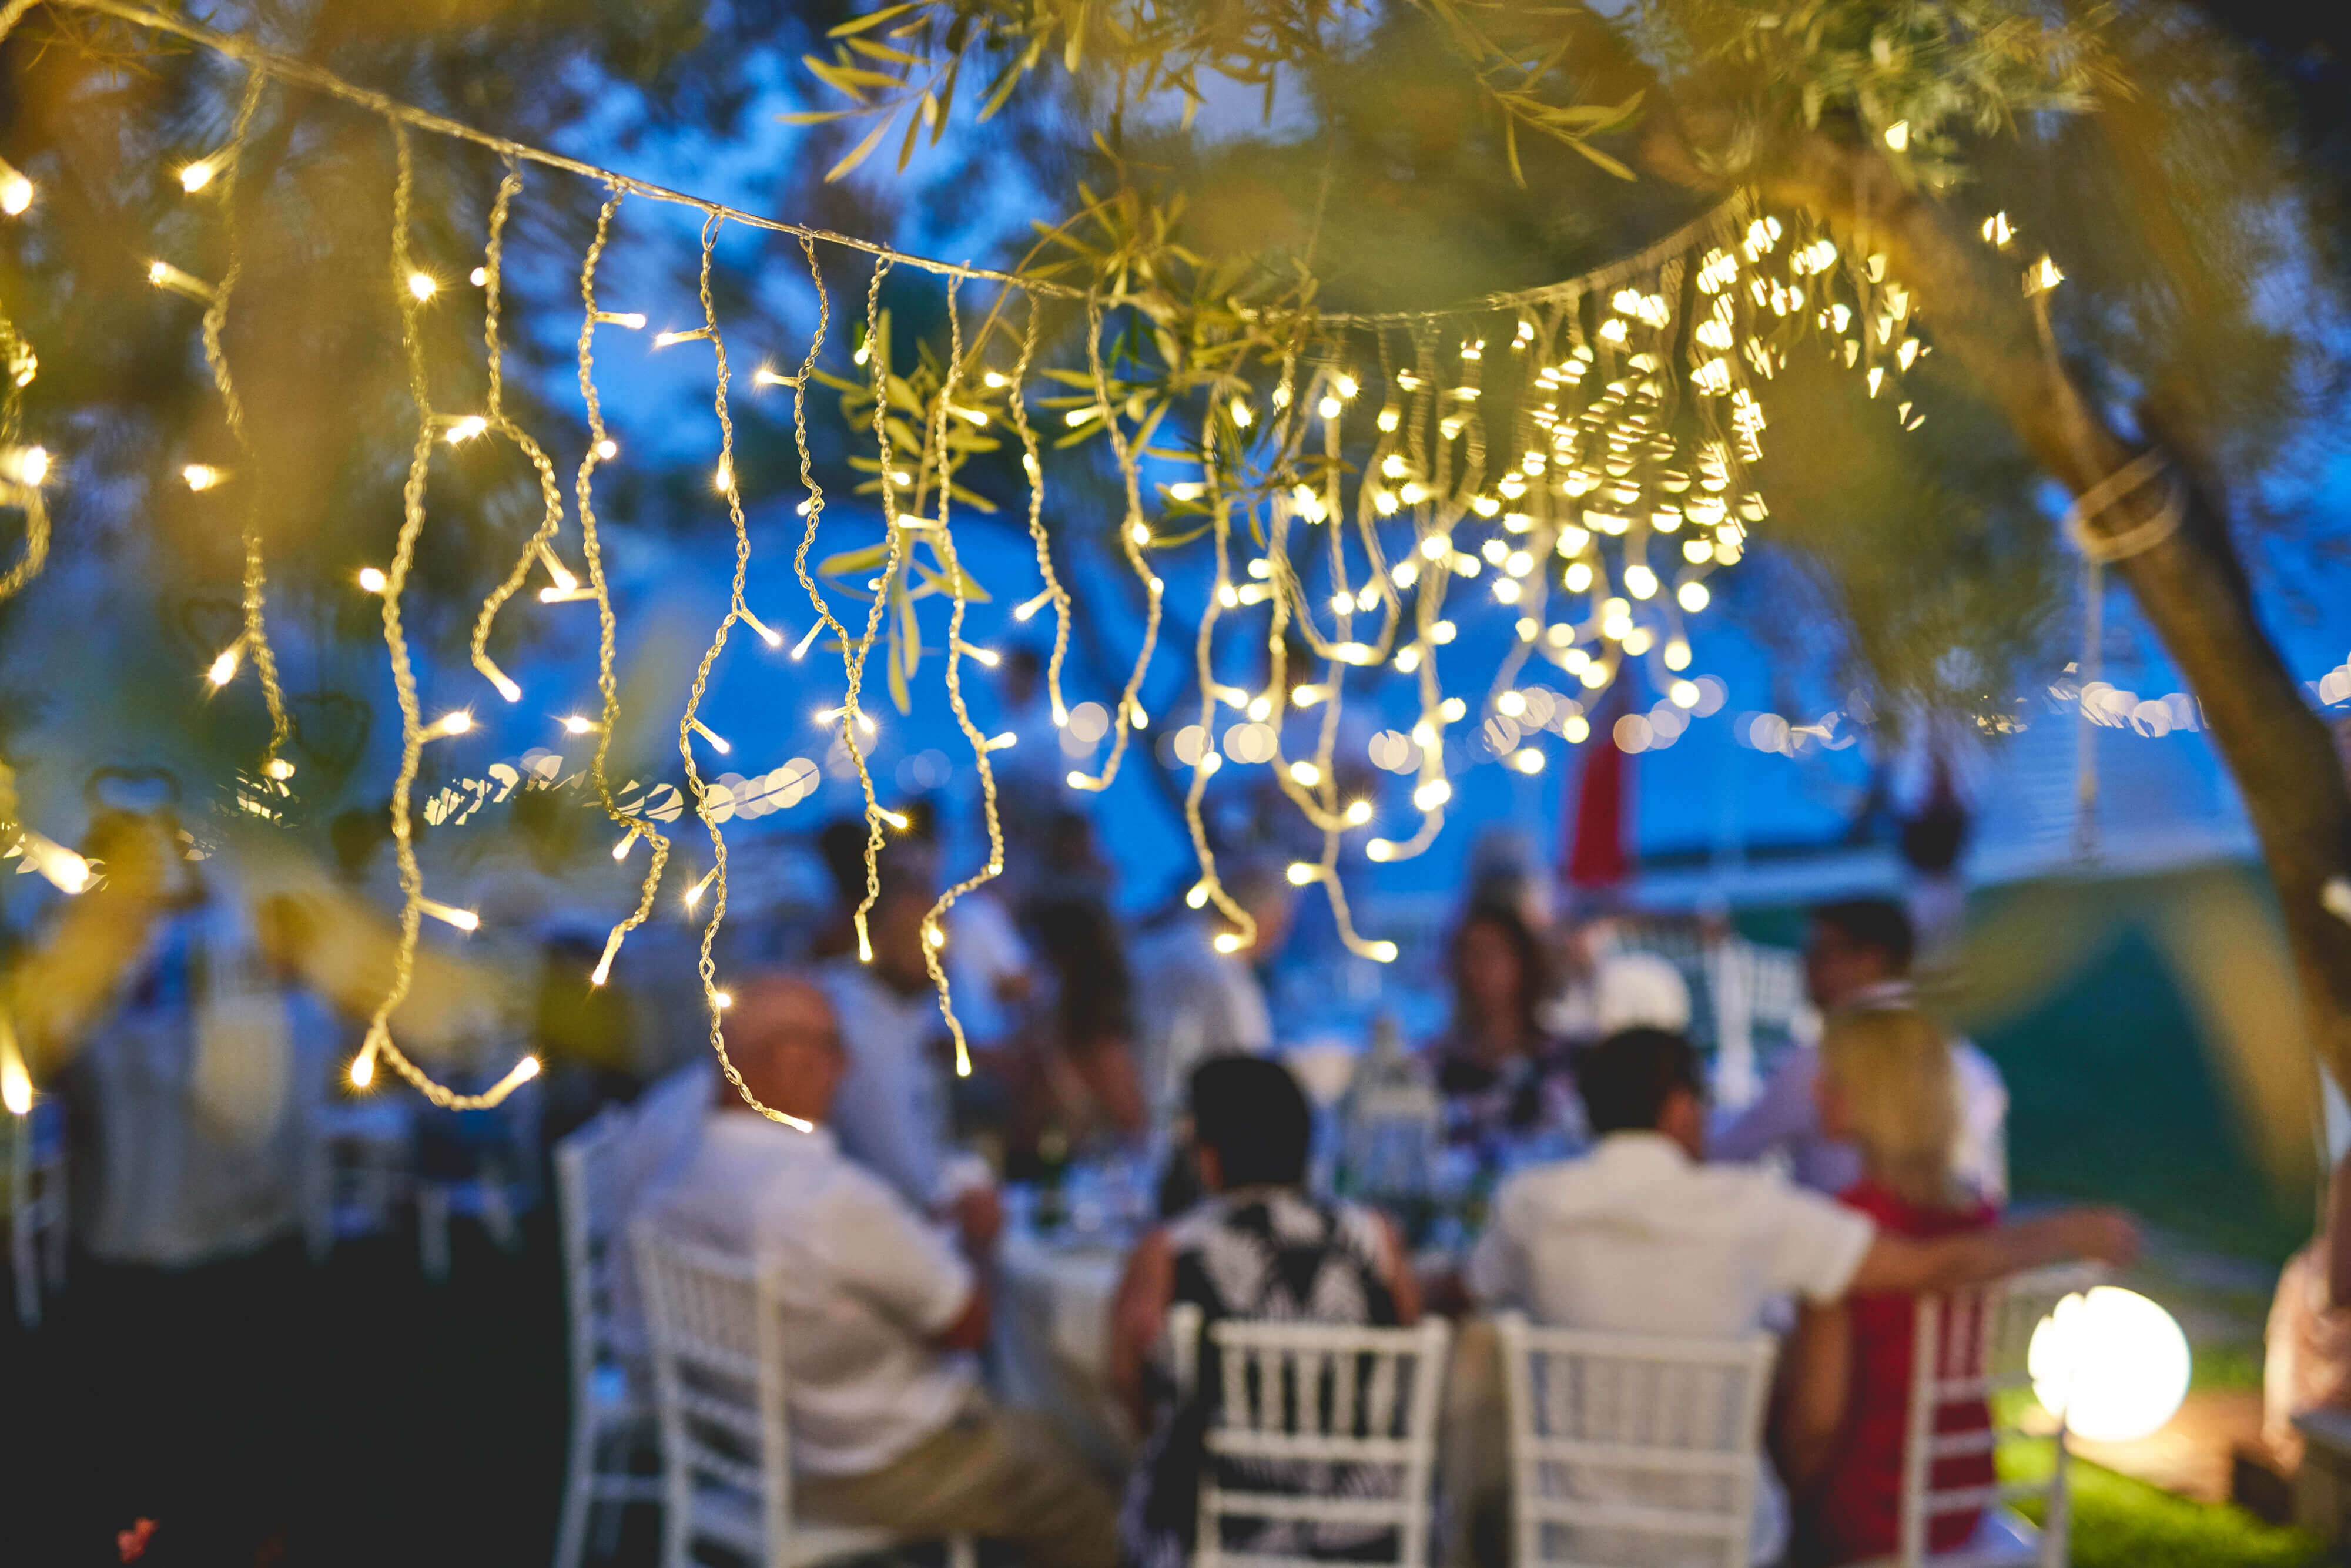 Intimate Weddings Abroad - Zante Weddings By The Bridal Consultant